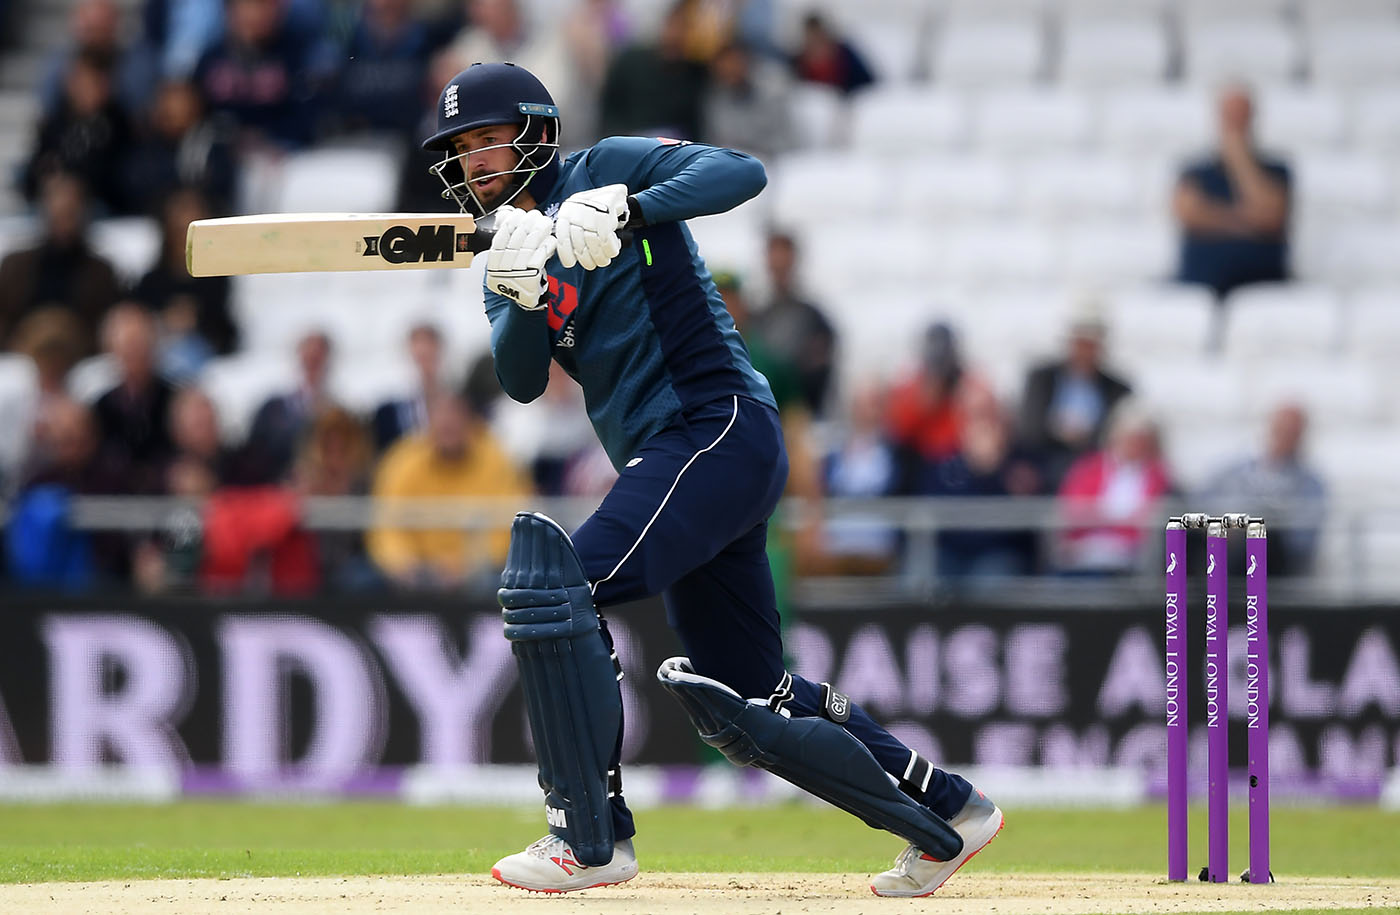 ICC World Cup 2019: Match 24, England vs Afghanistan - England's Predicted Playing XI